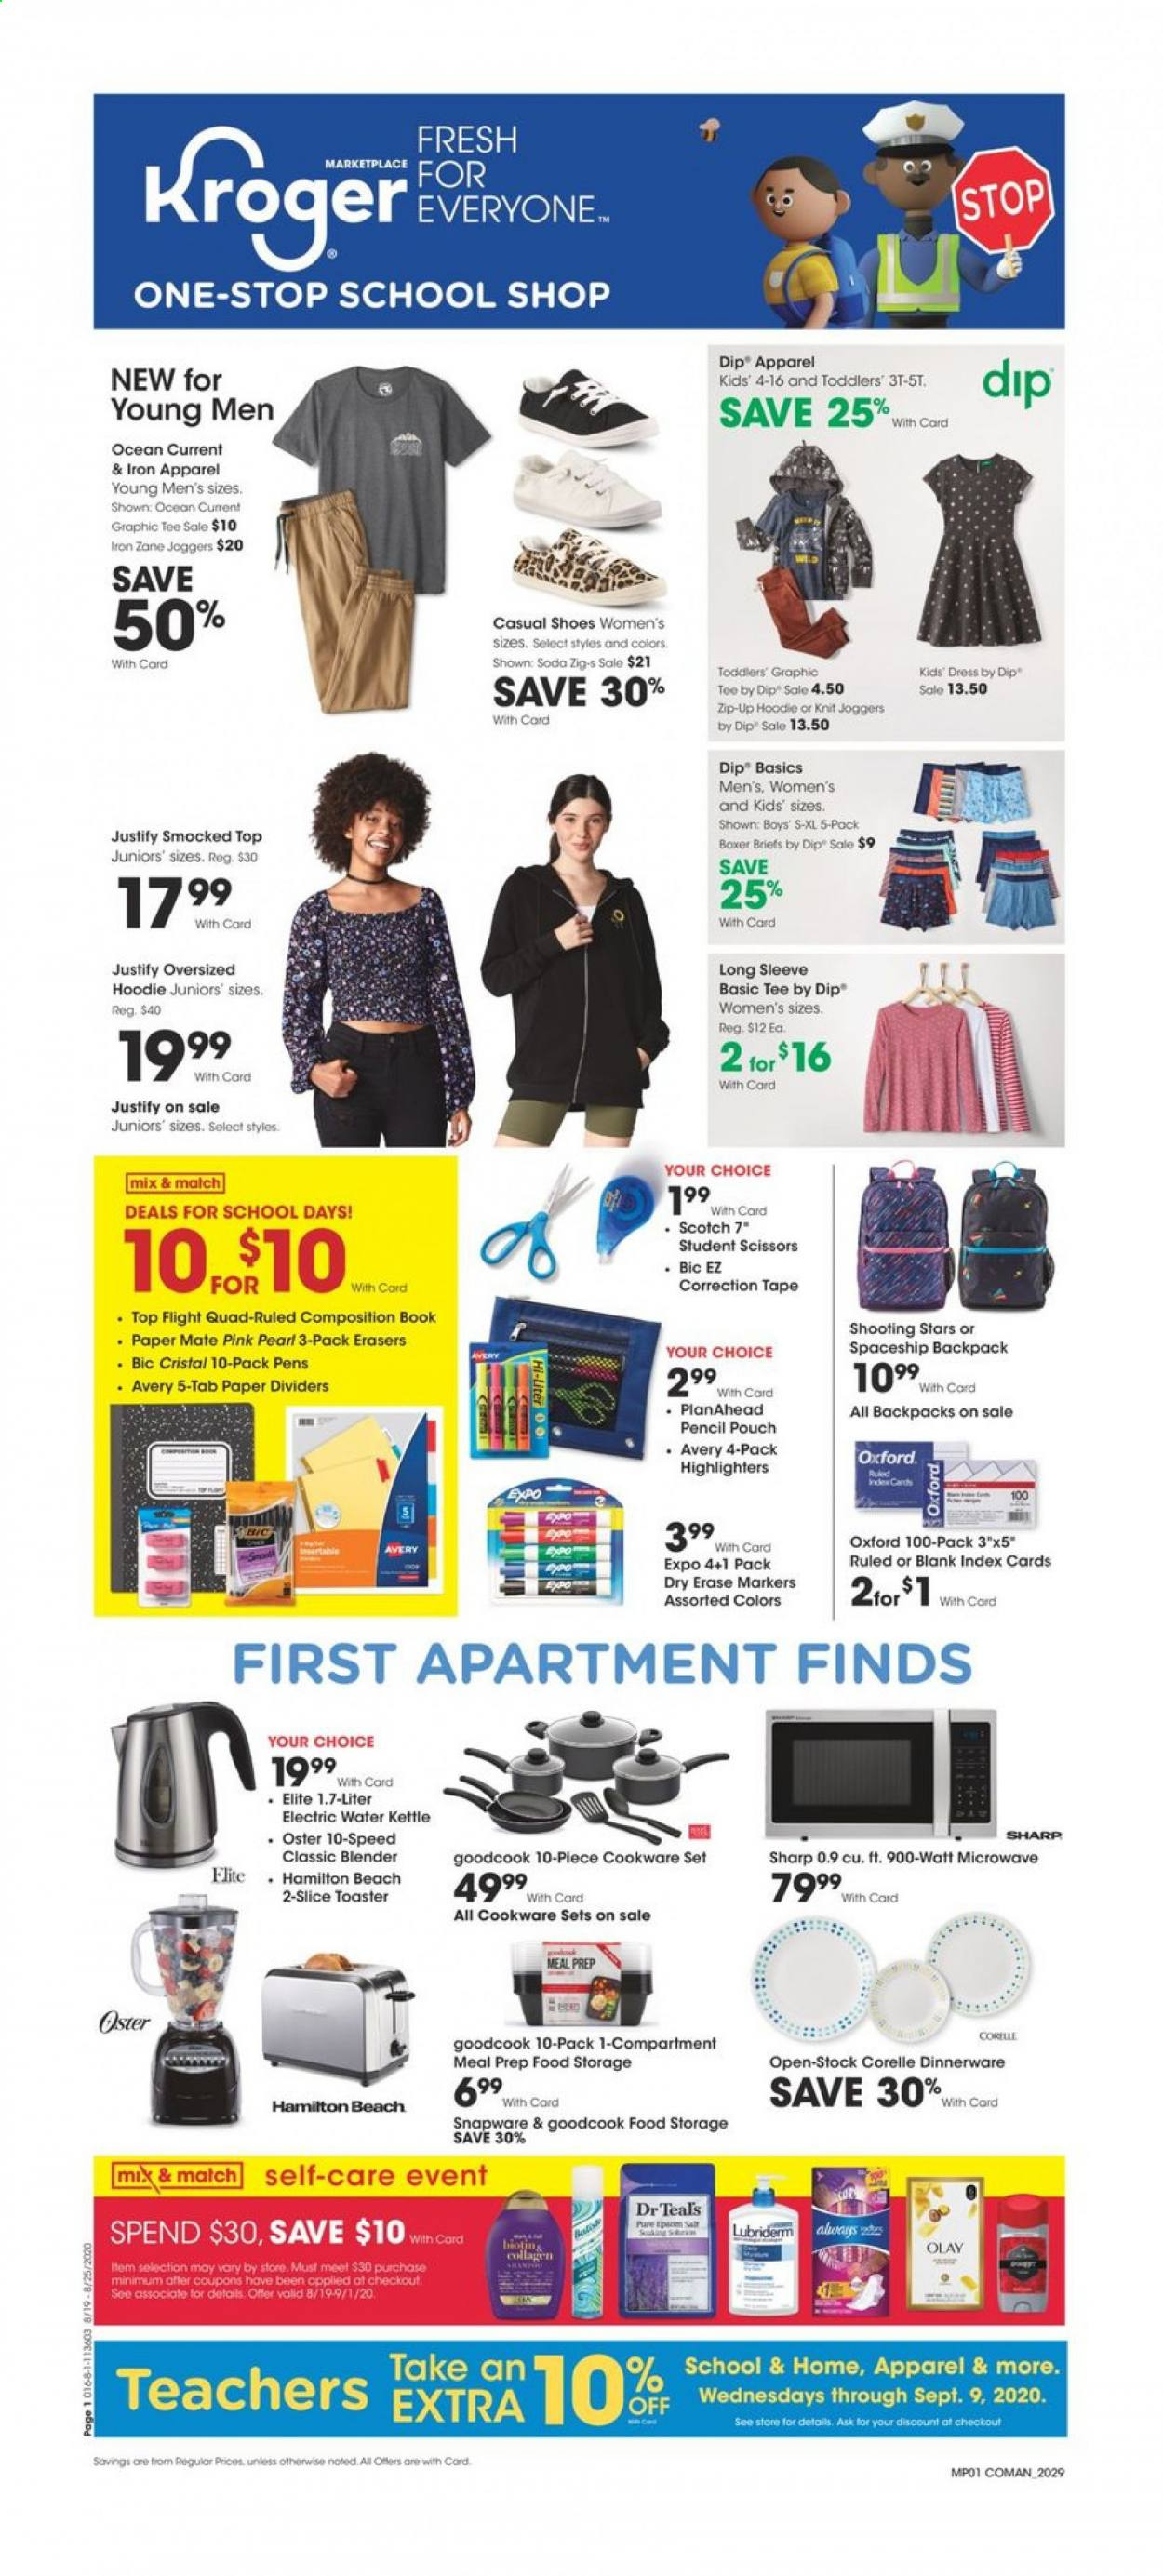 Kroger Flyer - 08.19.2020 - 08.25.2020 - Sales products - apparel, backpack, bic, blender, cookware set, dress, graphic tee, lubriderm, mate, microwave, sharp, shoes, tape, tee, hoodie, iron, olay, soda, toaster, scissors, dinnerware, book, kettle. Page 1.